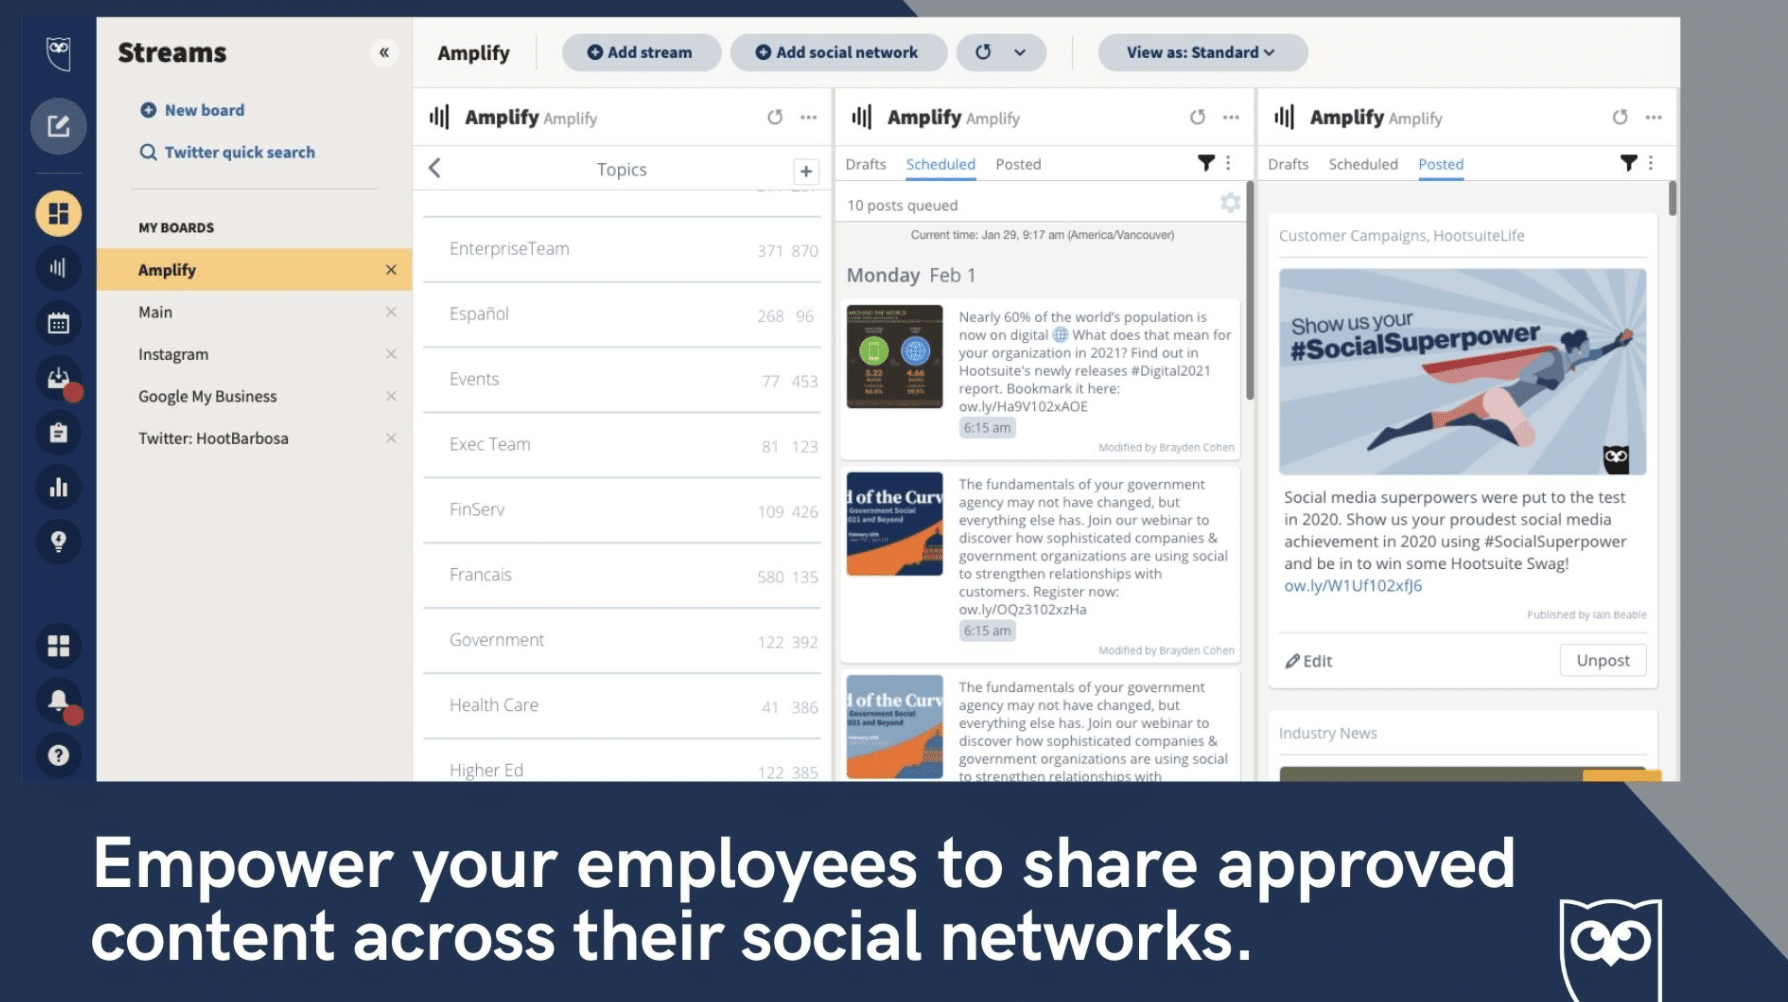 Hootsuite Amplify employee advocacy